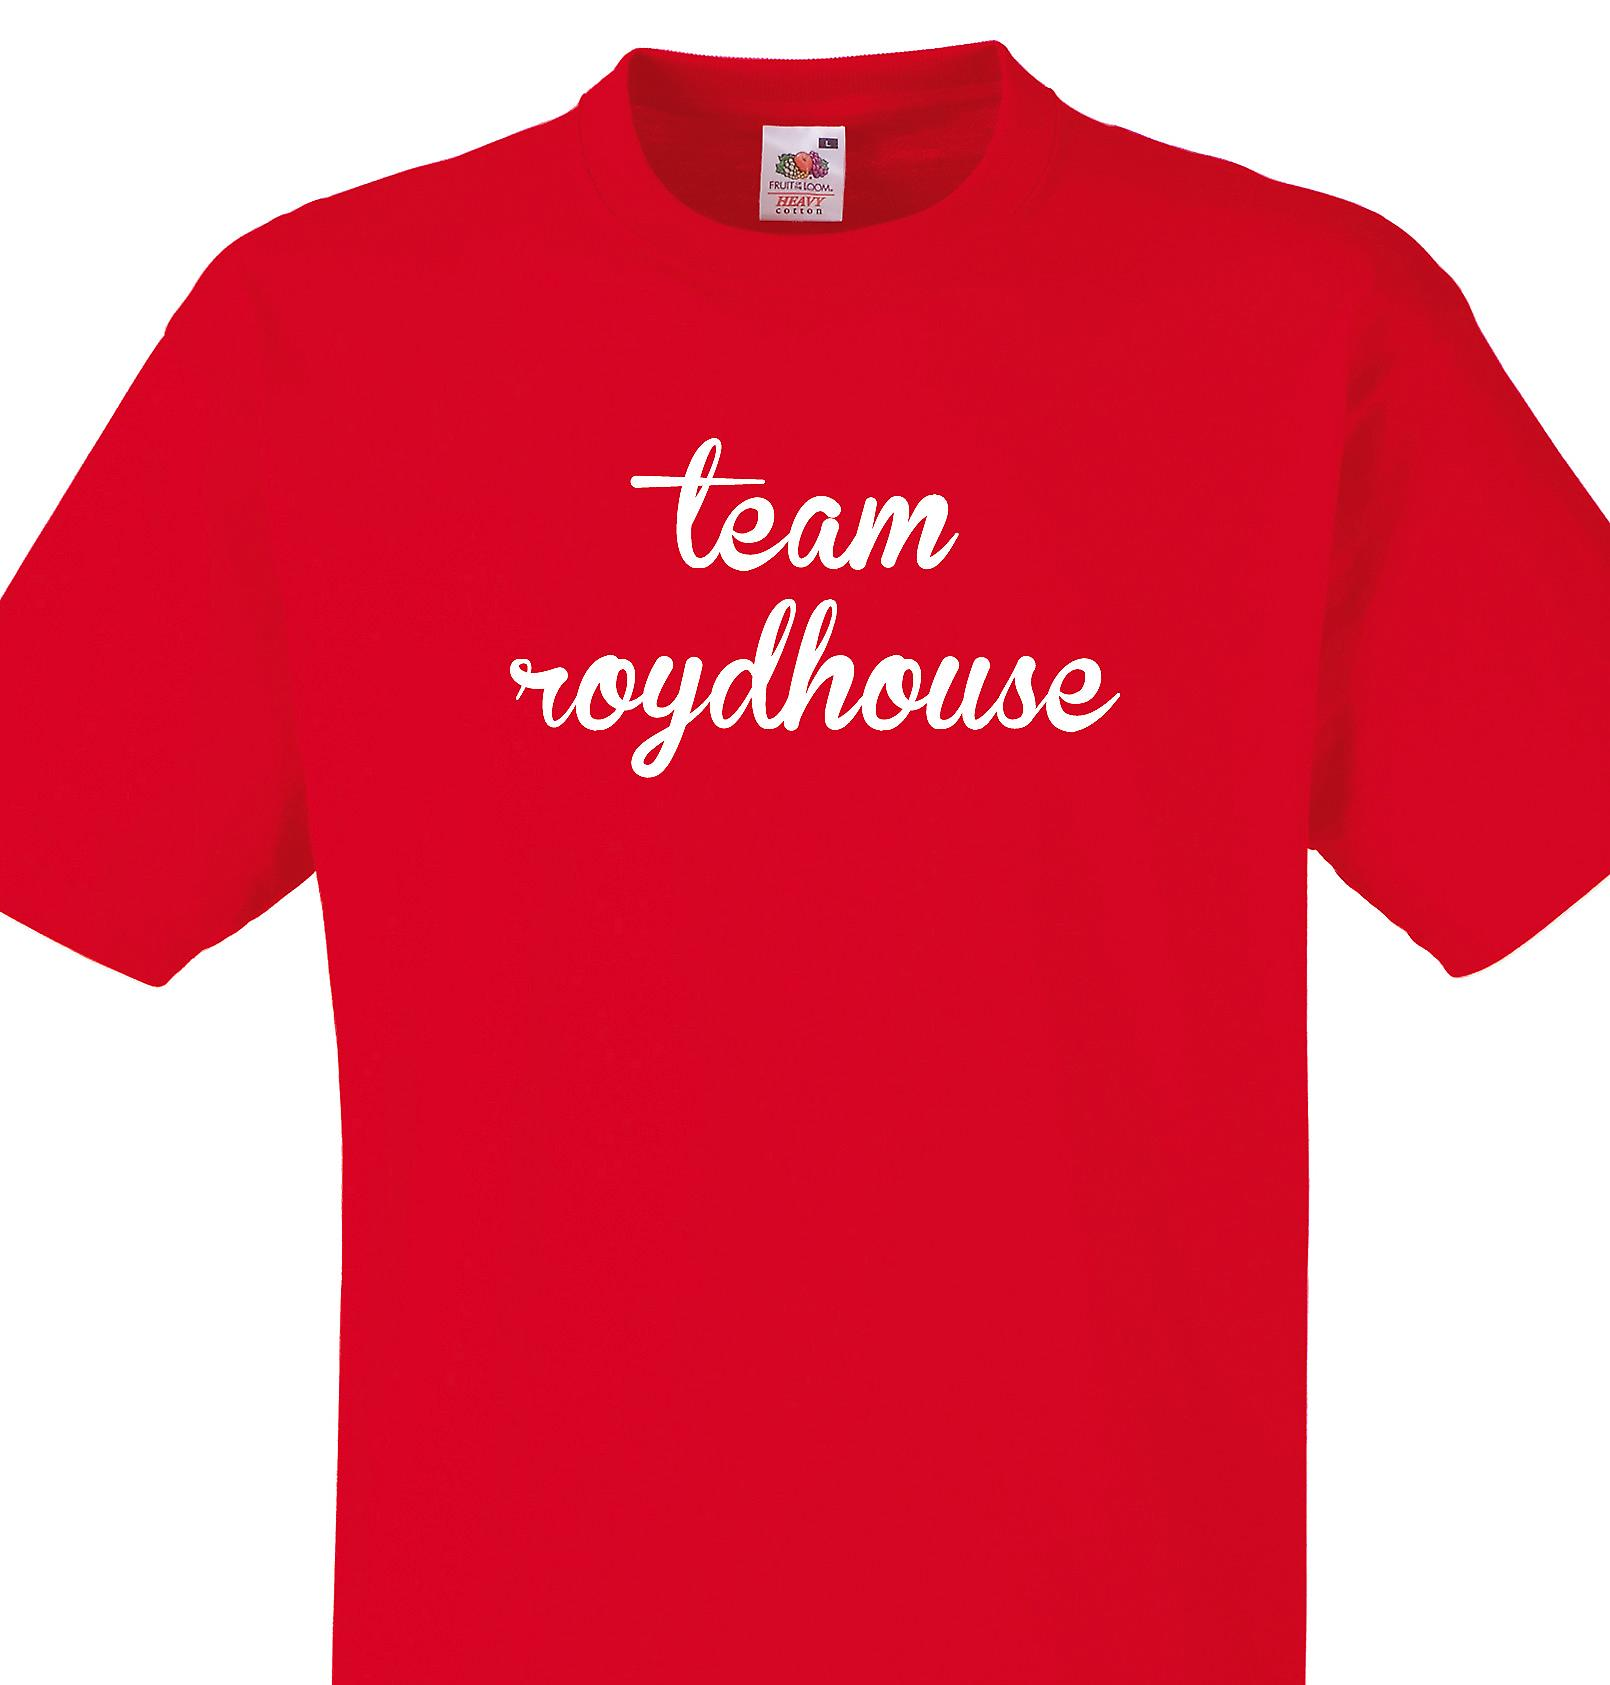 Team Roydhouse Red T shirt